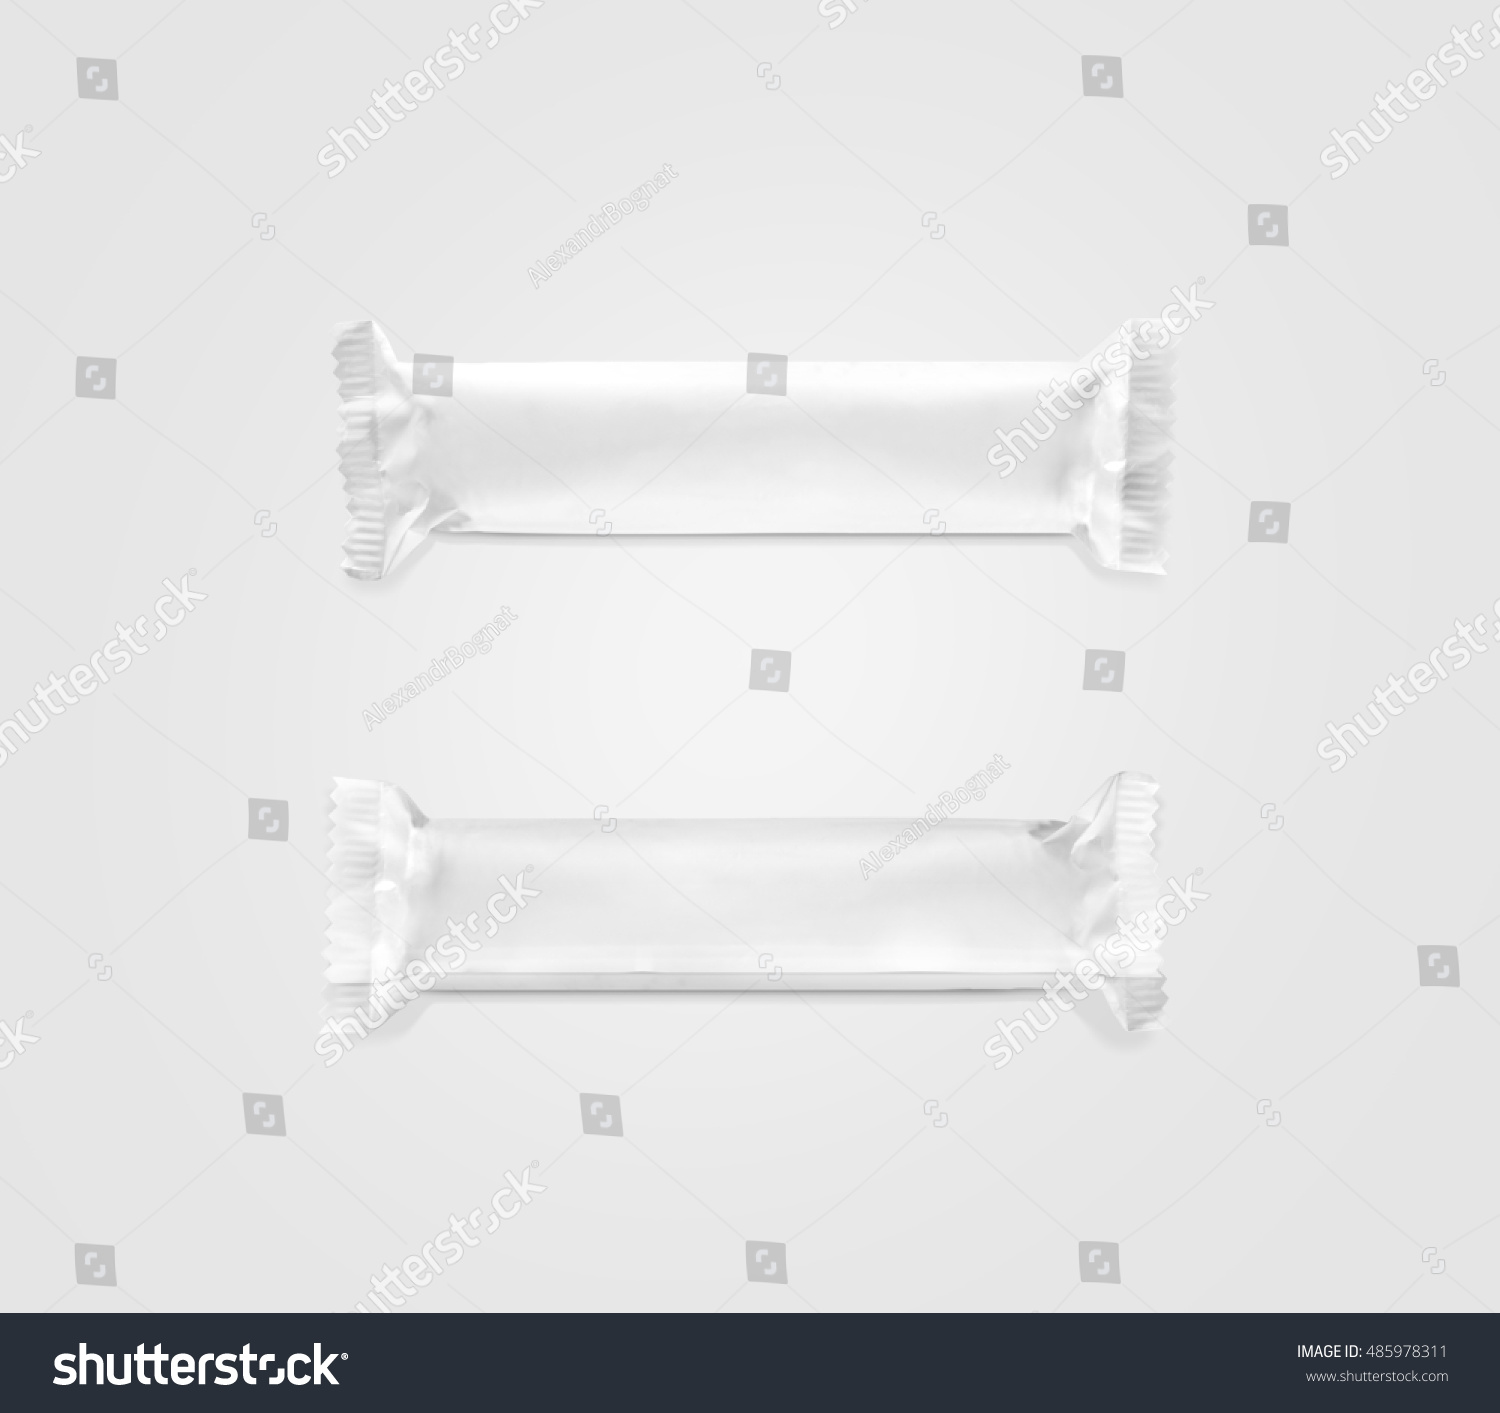 blank white candy bar plastic wrap mockup top and back side 3d isolated